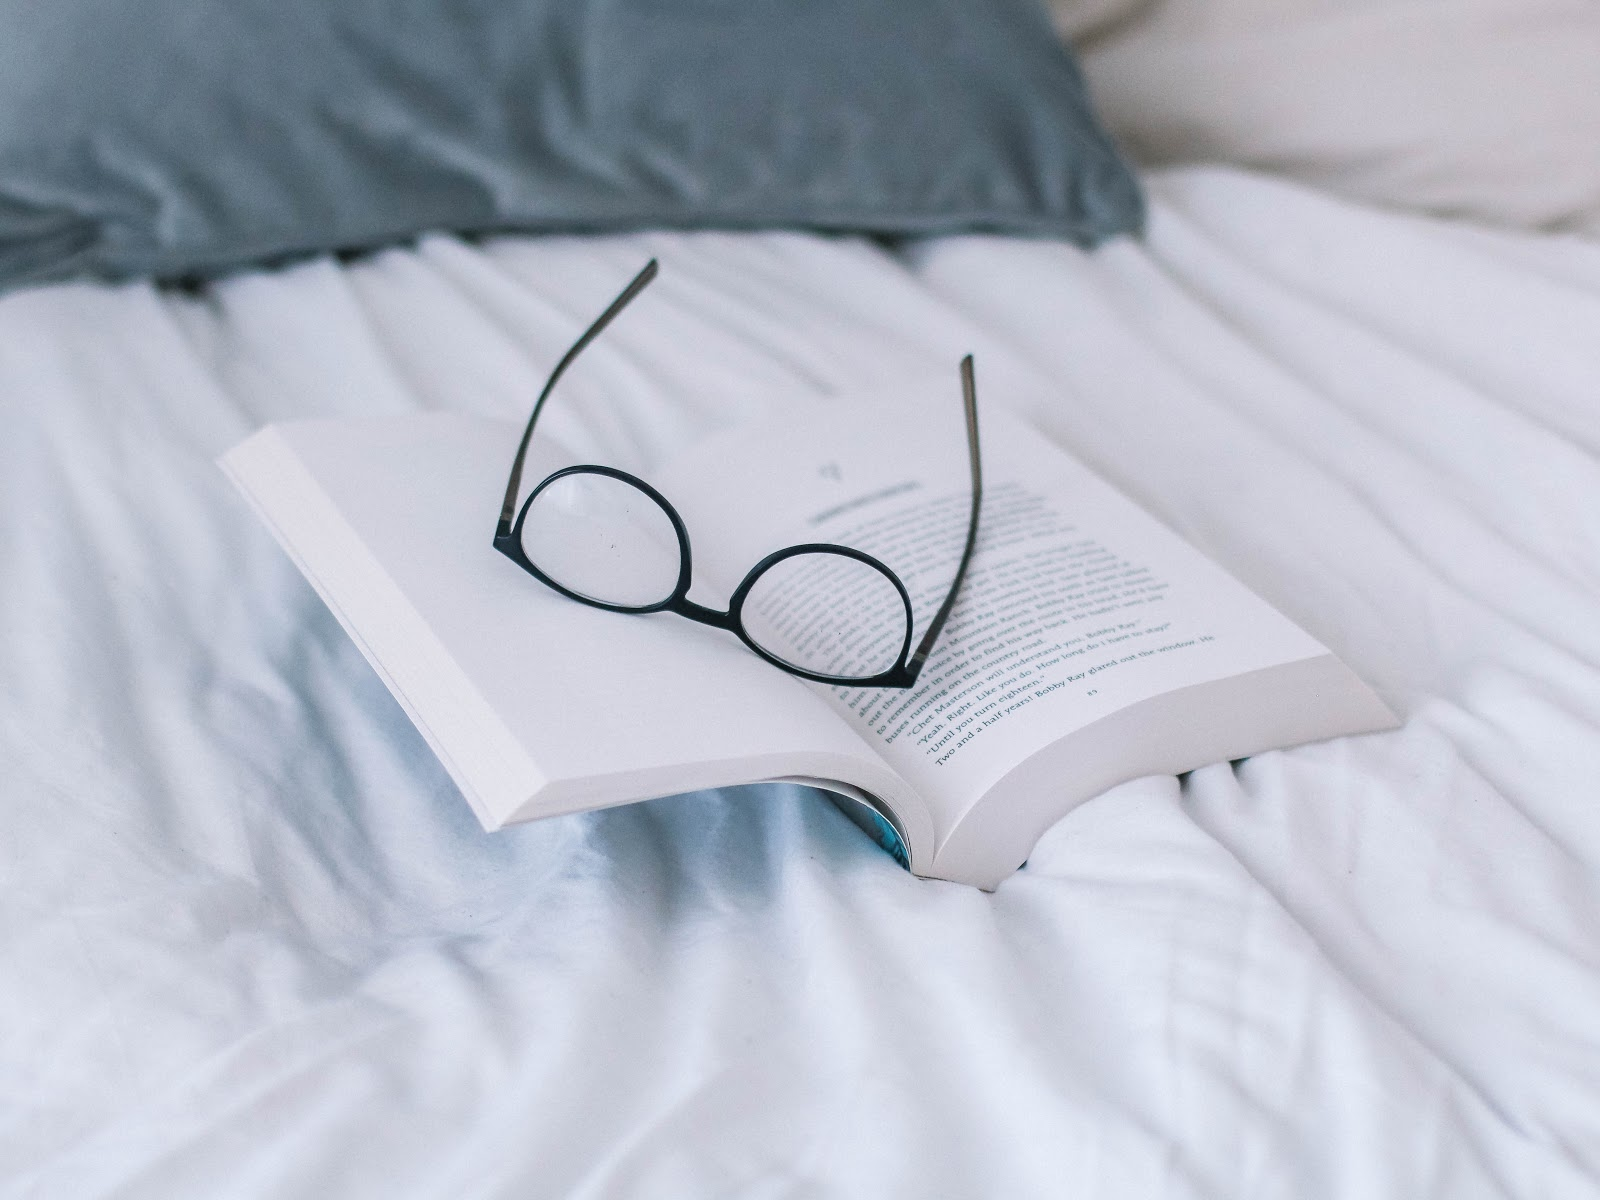 a pair of black spectacles placed on an open book